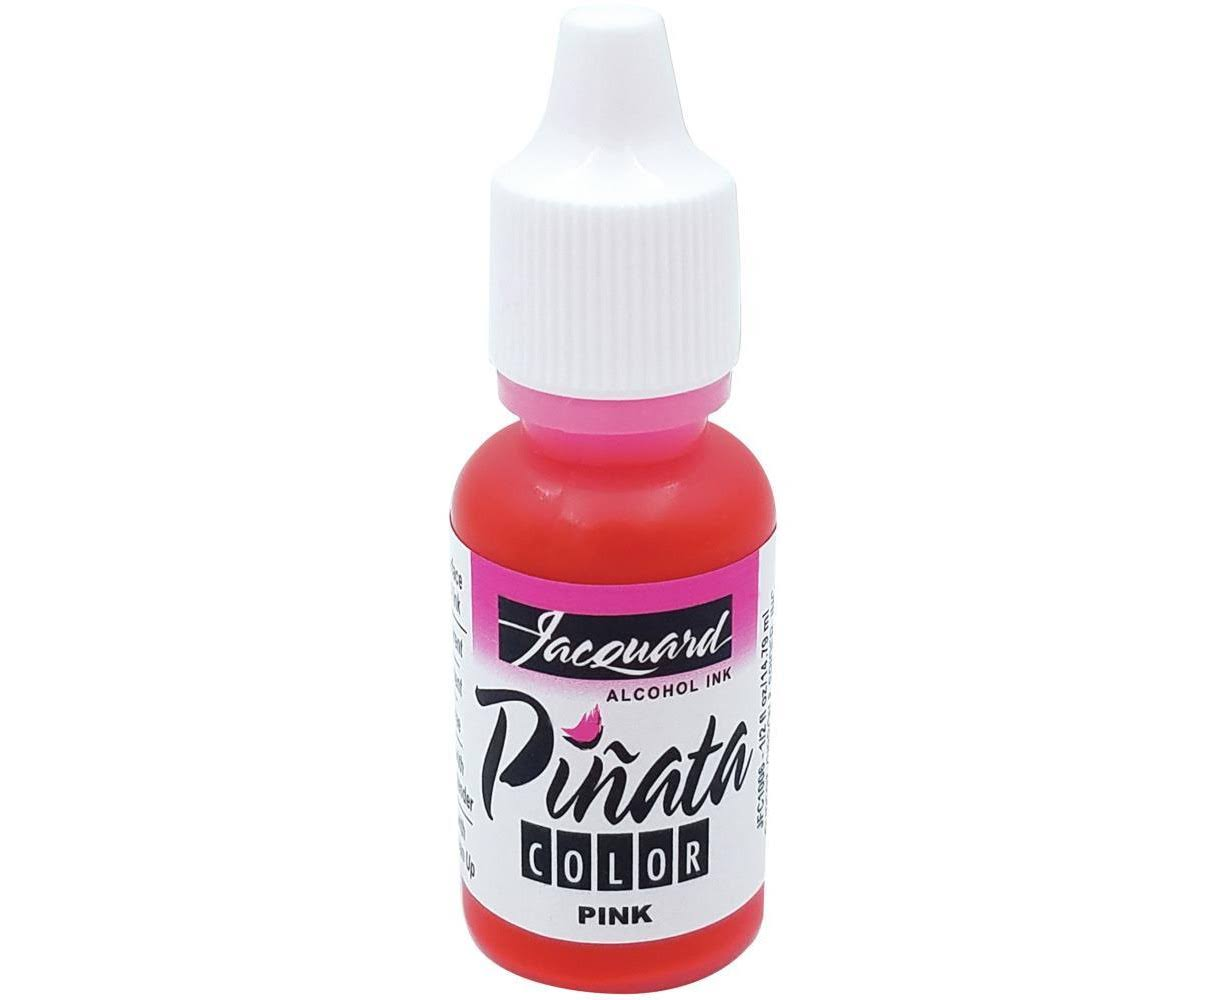 Jacquard Pinata Color Alcohol Ink .5oz-Pink